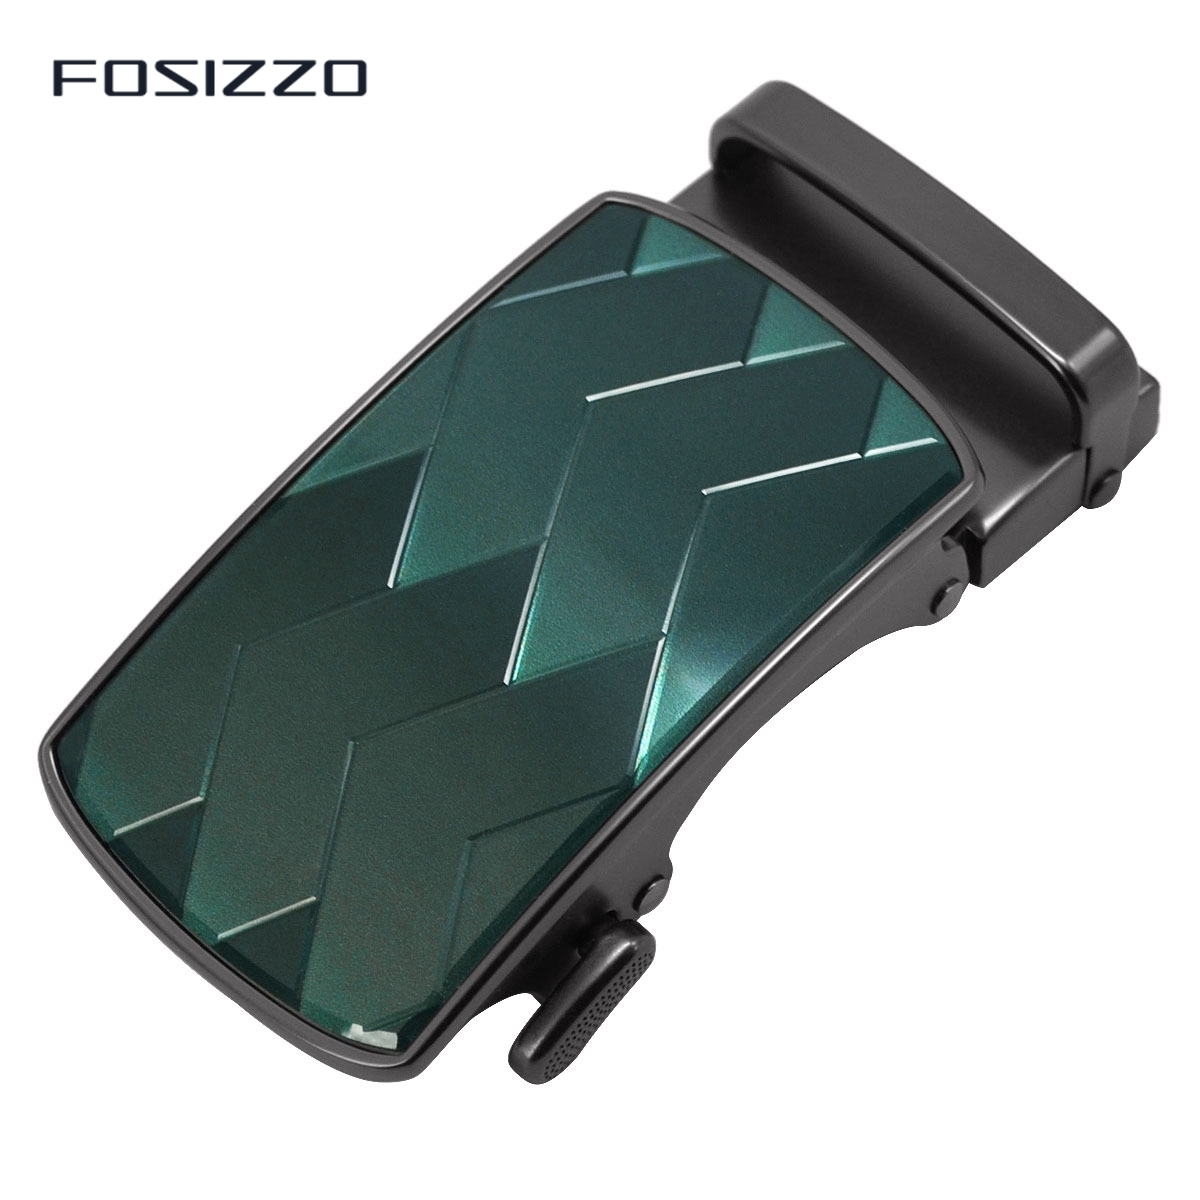 FOSIZZO New Fashion Men's Buckle Zinc Alloy Automatic Buckle 3.6CM #1035